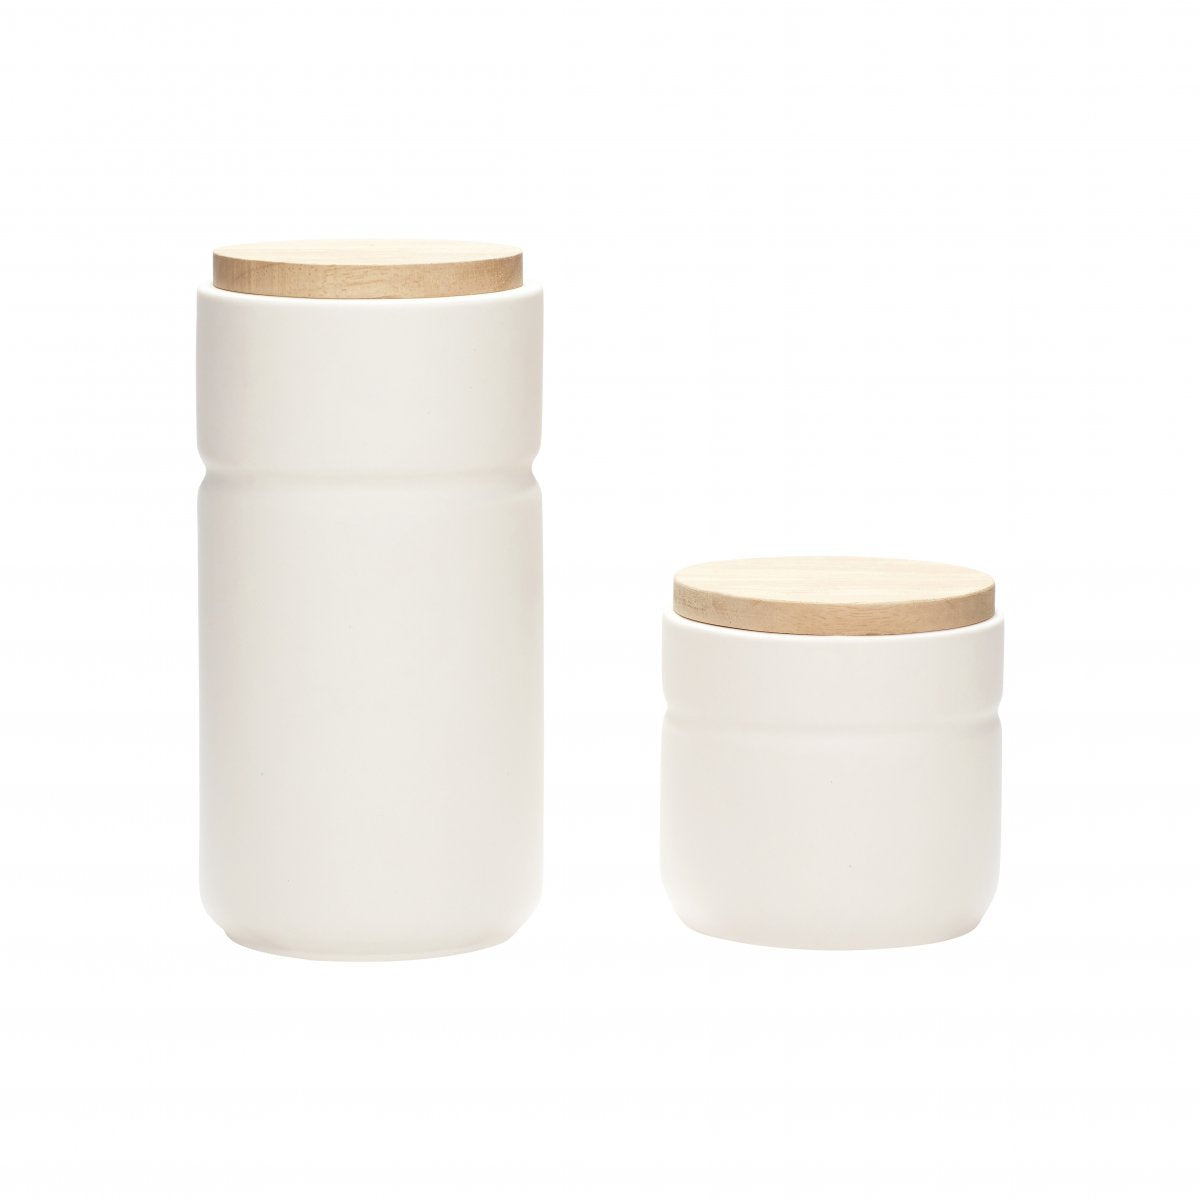 Tall White Ceramic Storage Jar with Wooden Lid